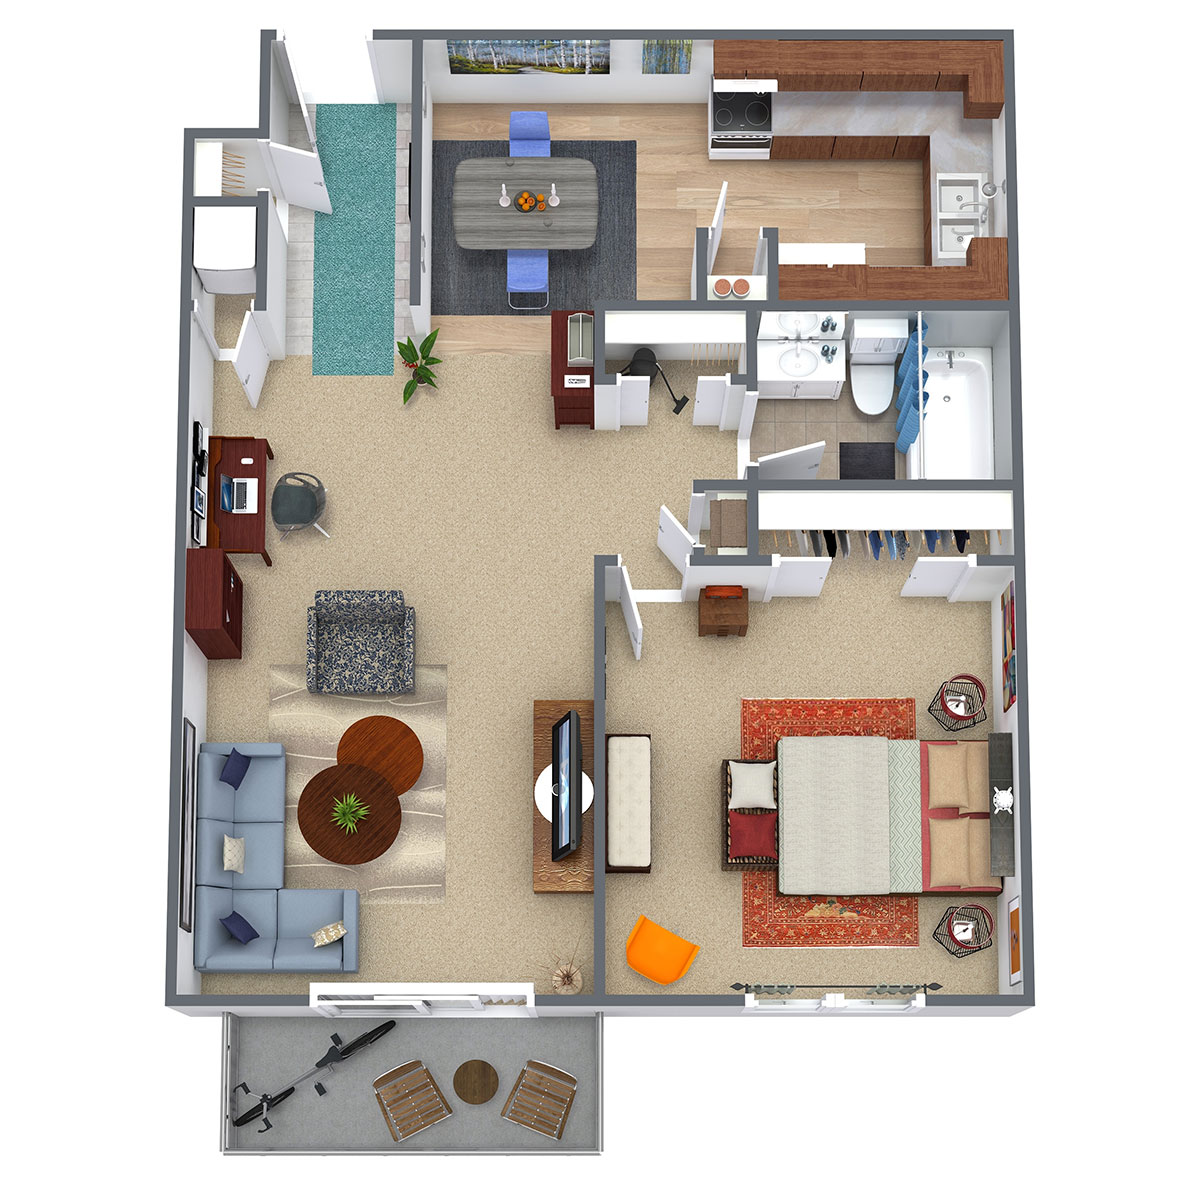 Floorplan - 1 Bedroom / 1 Bath image